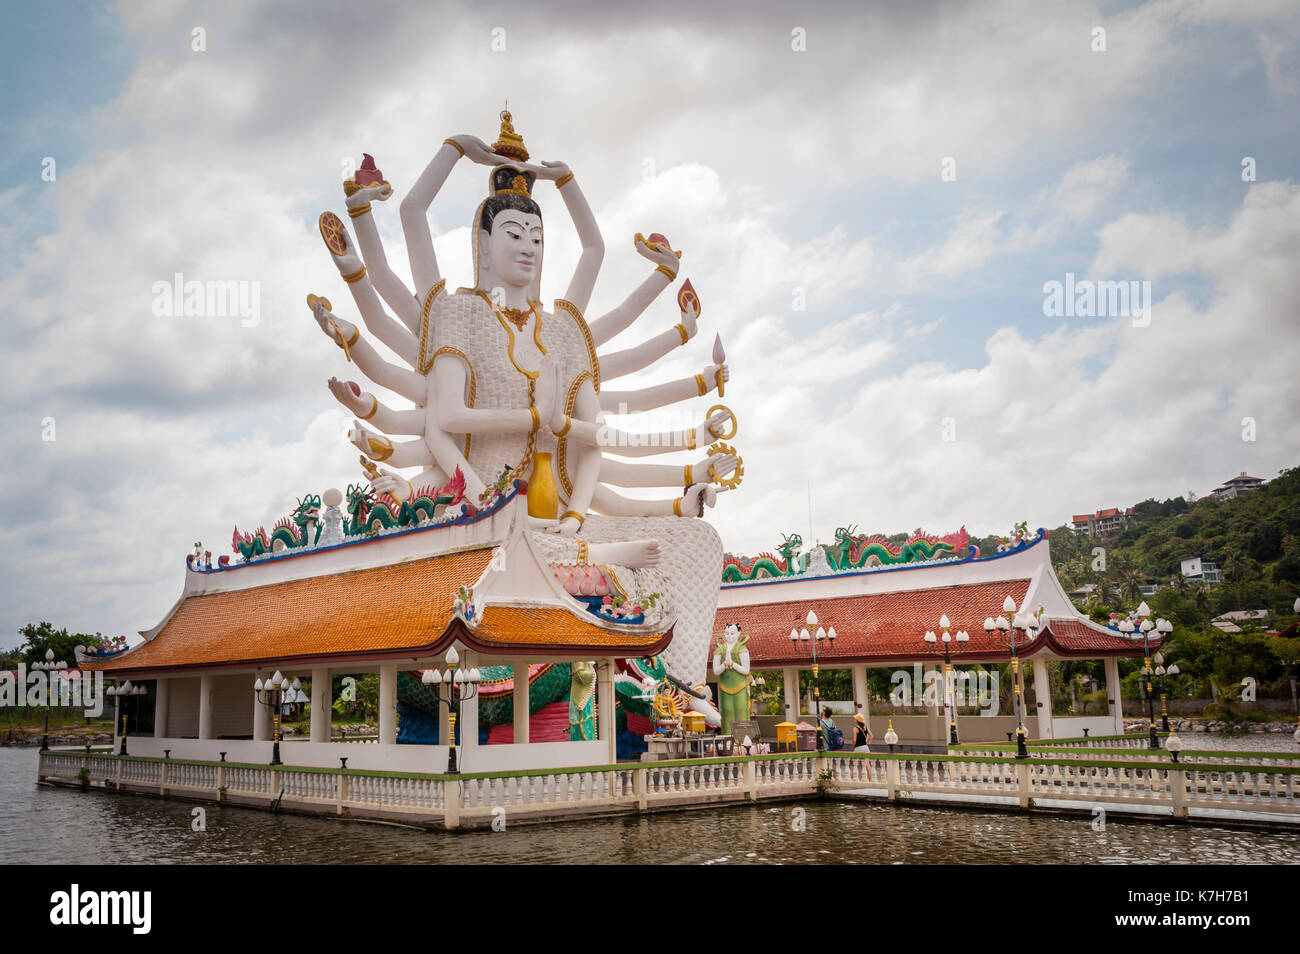 Guanyin, a the goddess of mercy and compassion at Wat Plai Leam, a Buddhist temple on the island of Ko Samui, Thailand. - Stock Image